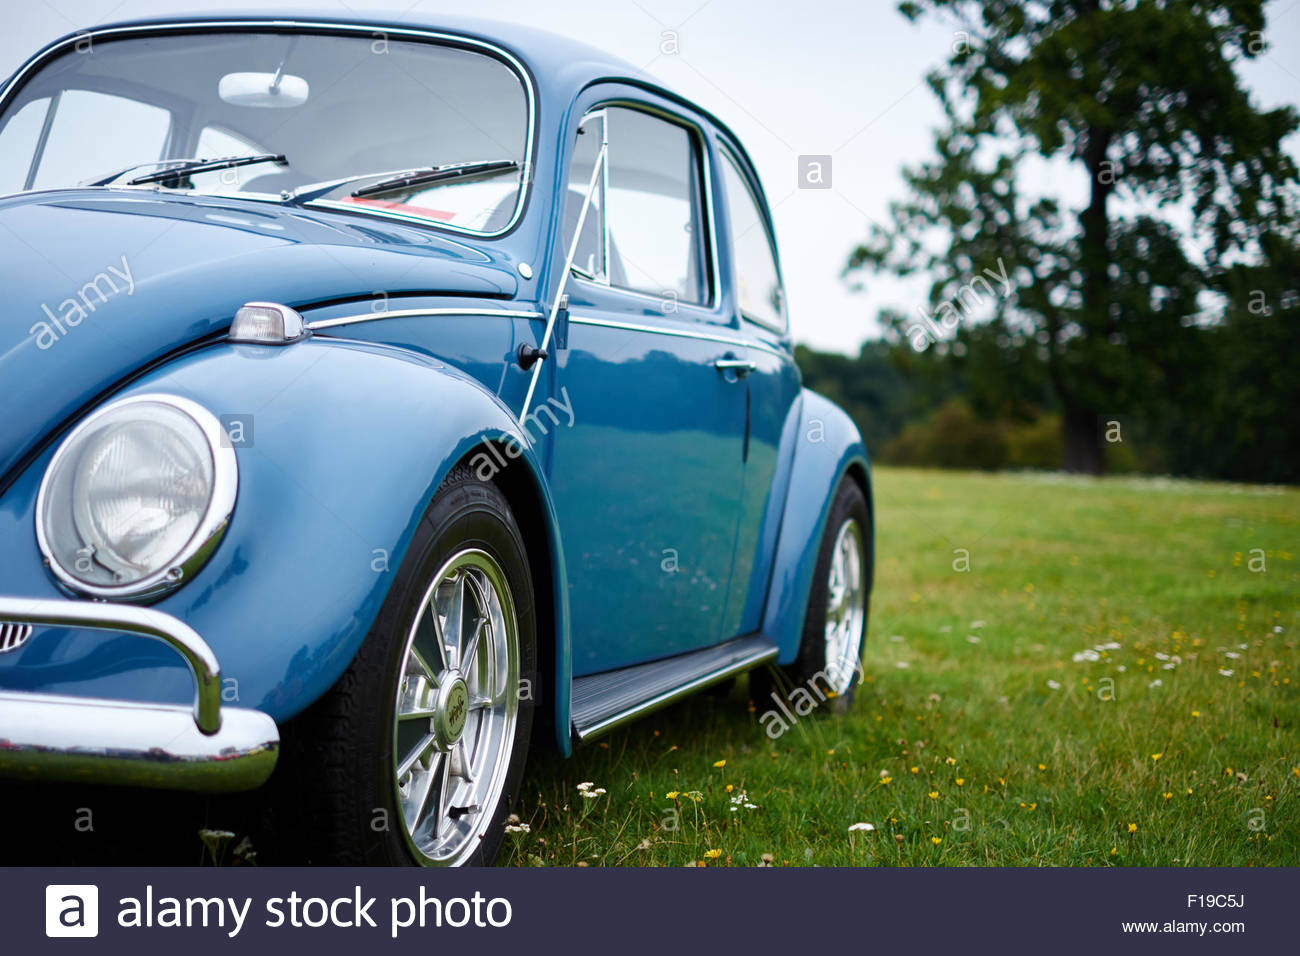 Vintage blue Volkswagen VW Beetle car on grass. - Stock Image